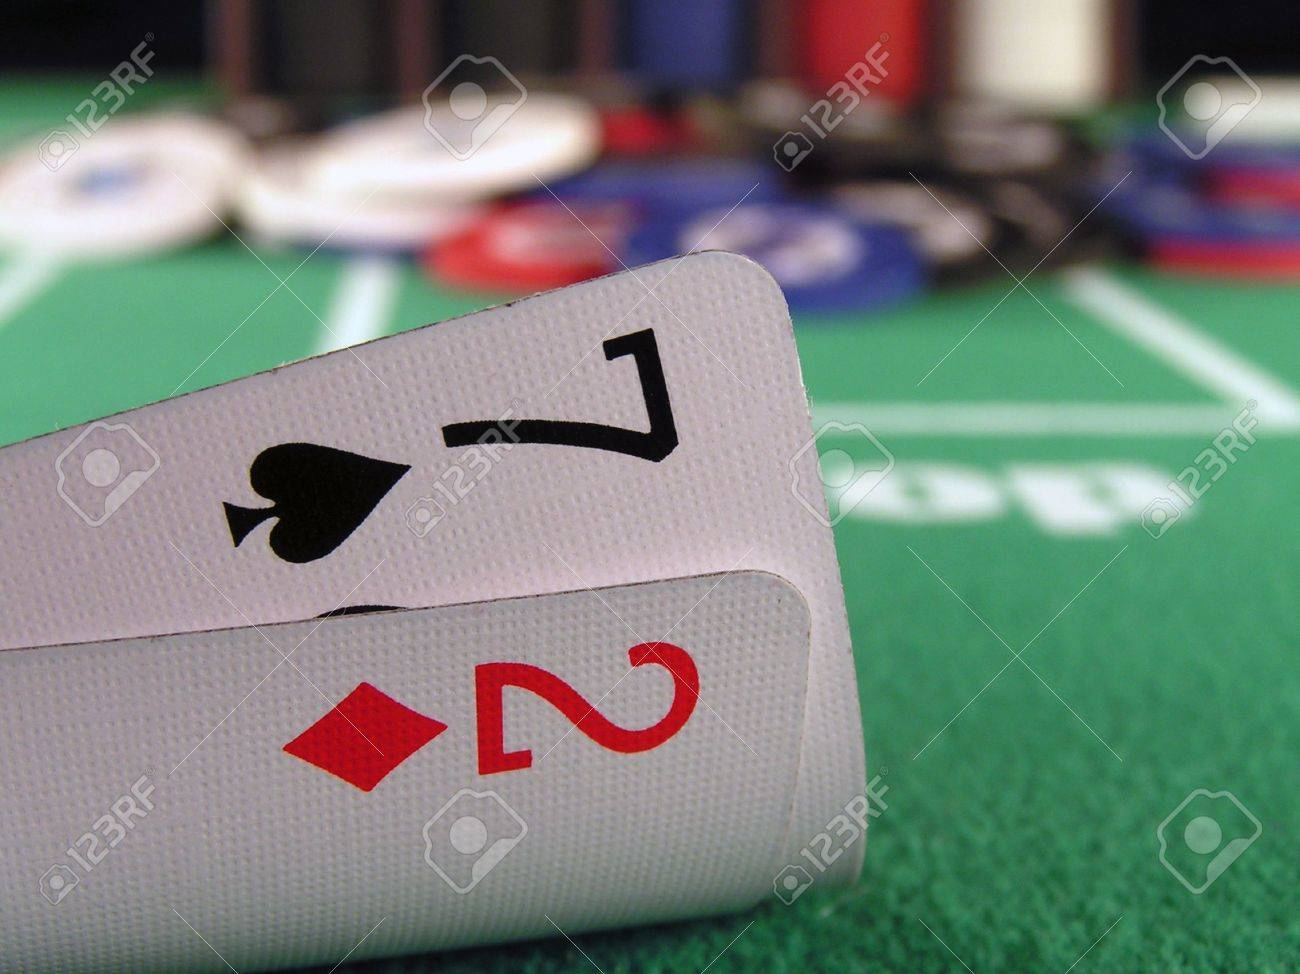 How to be a good craps dealer